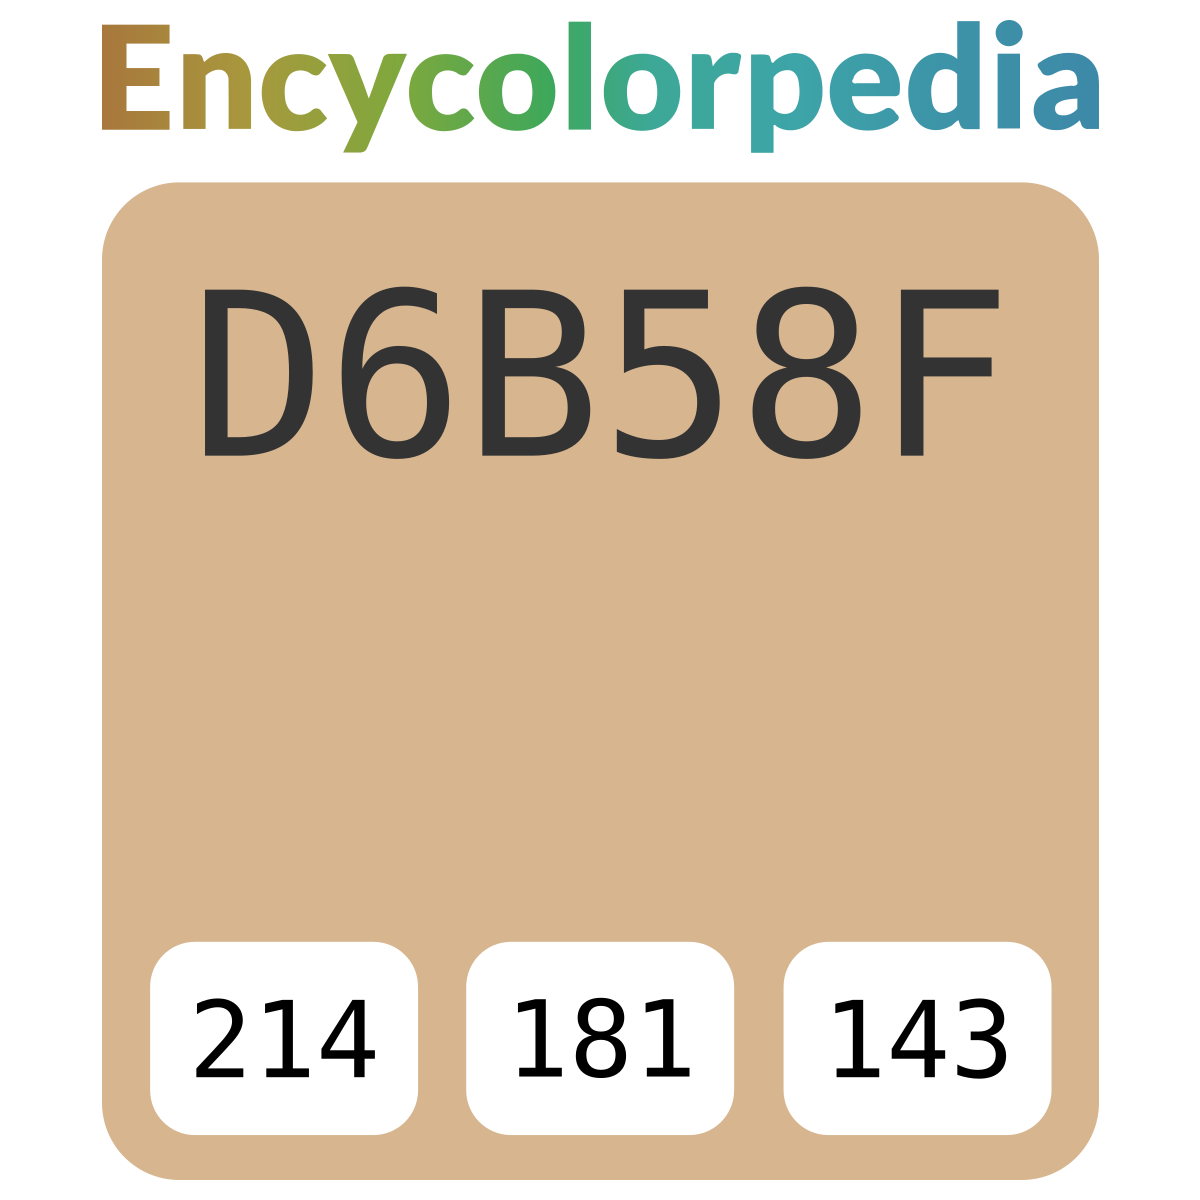 General Paint Vertri Clc 1244d D6b58f Hex Color Code Schemes